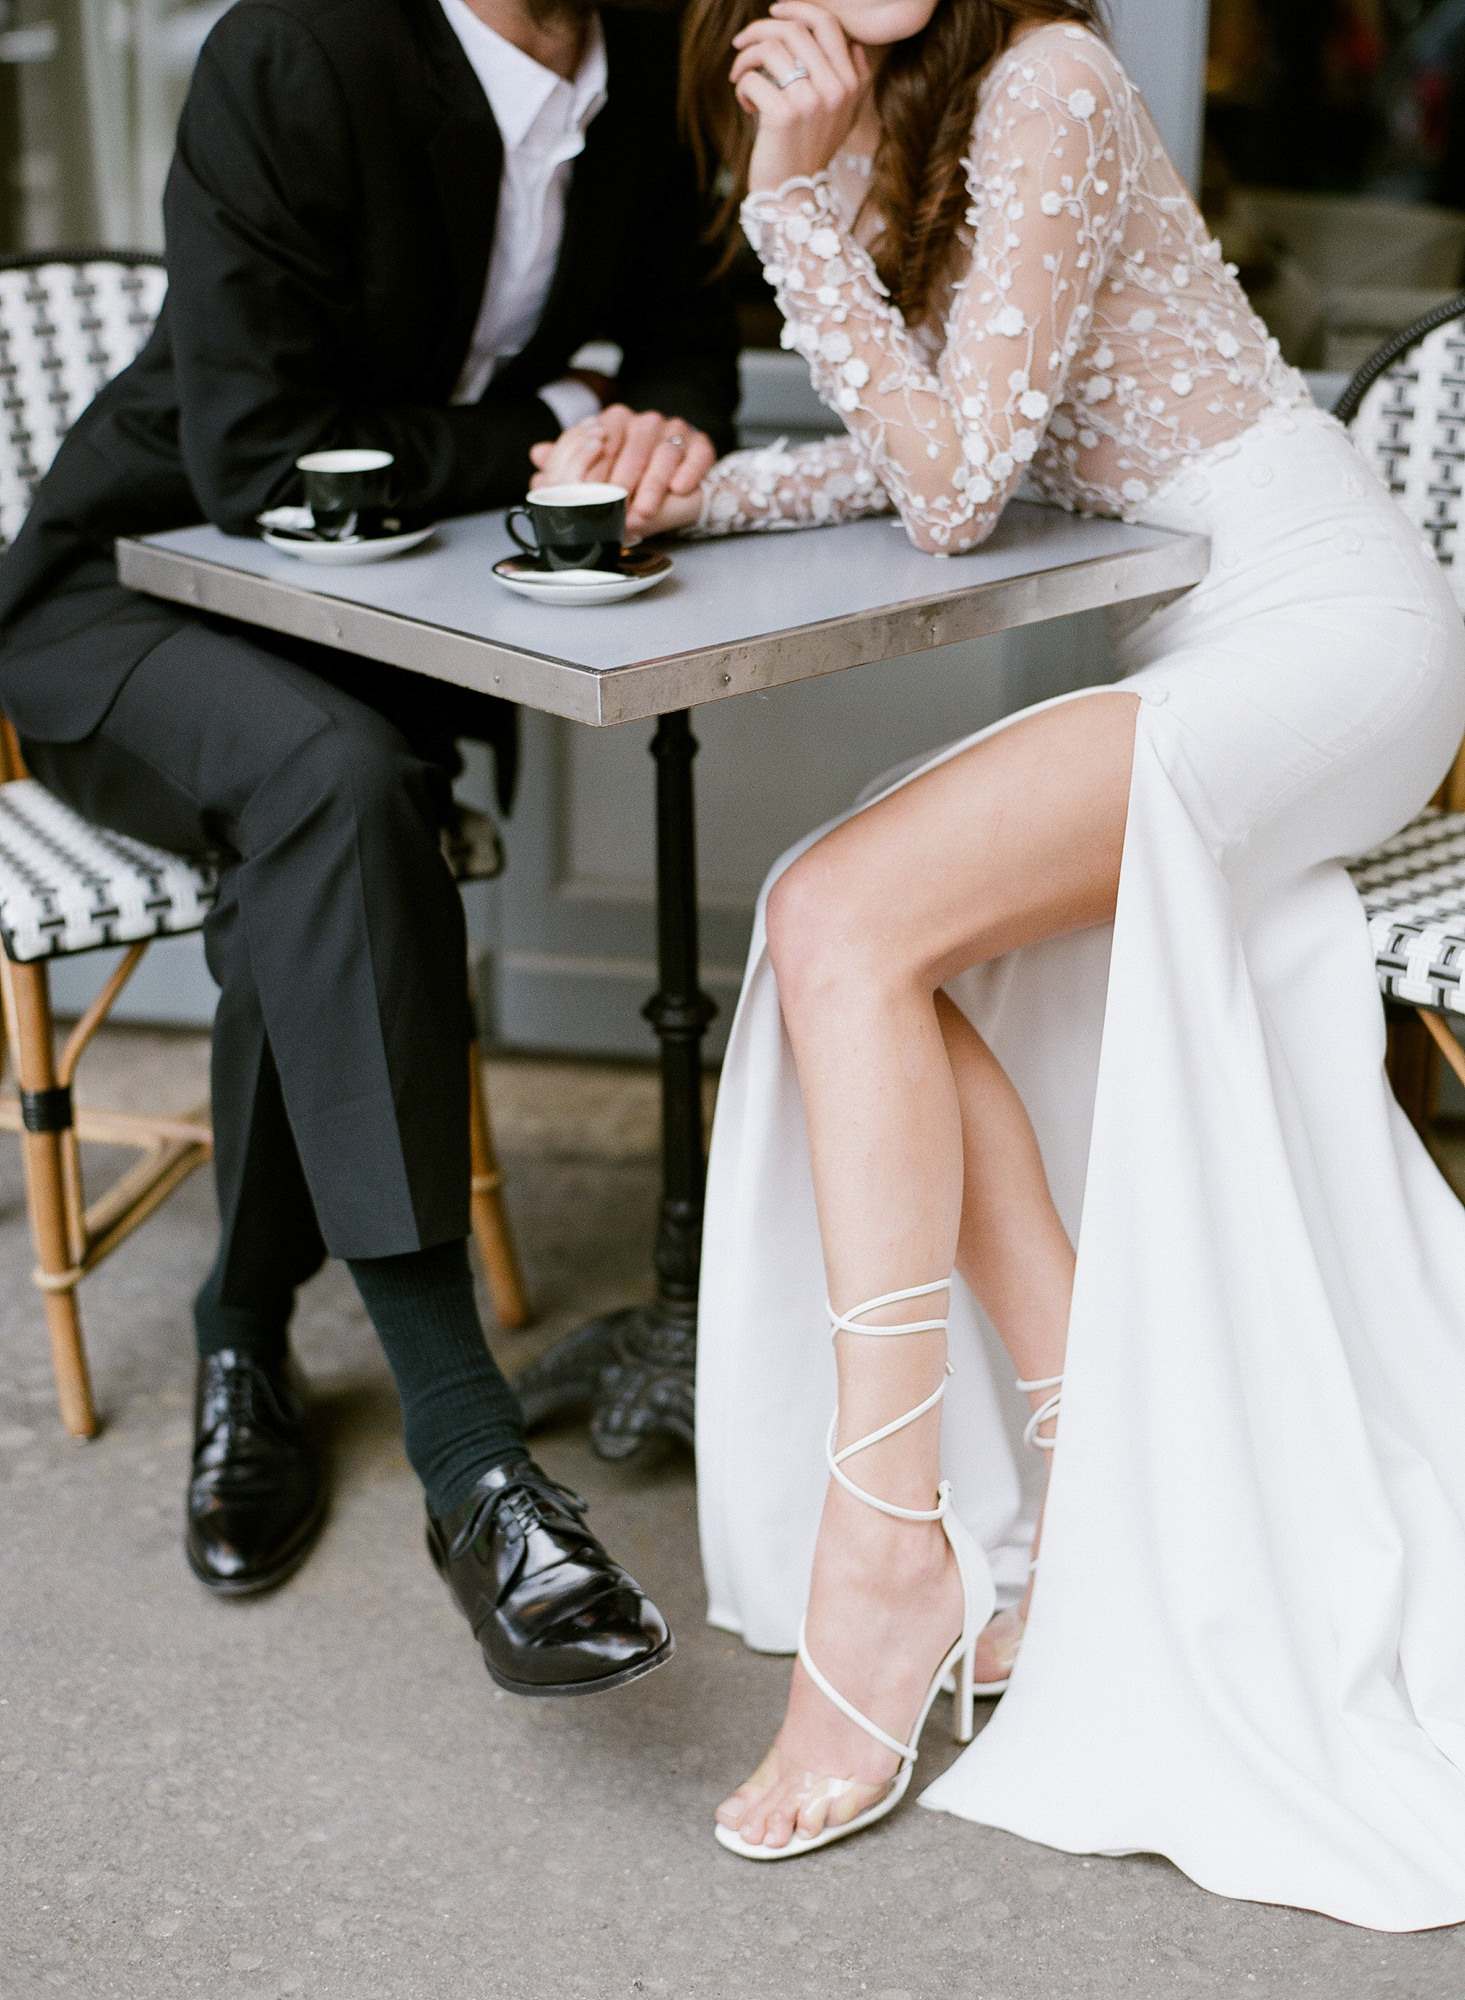 Sexy photo of couple sitting at cafe, bride with thigh-high slit skirt - Greg Finck Photography